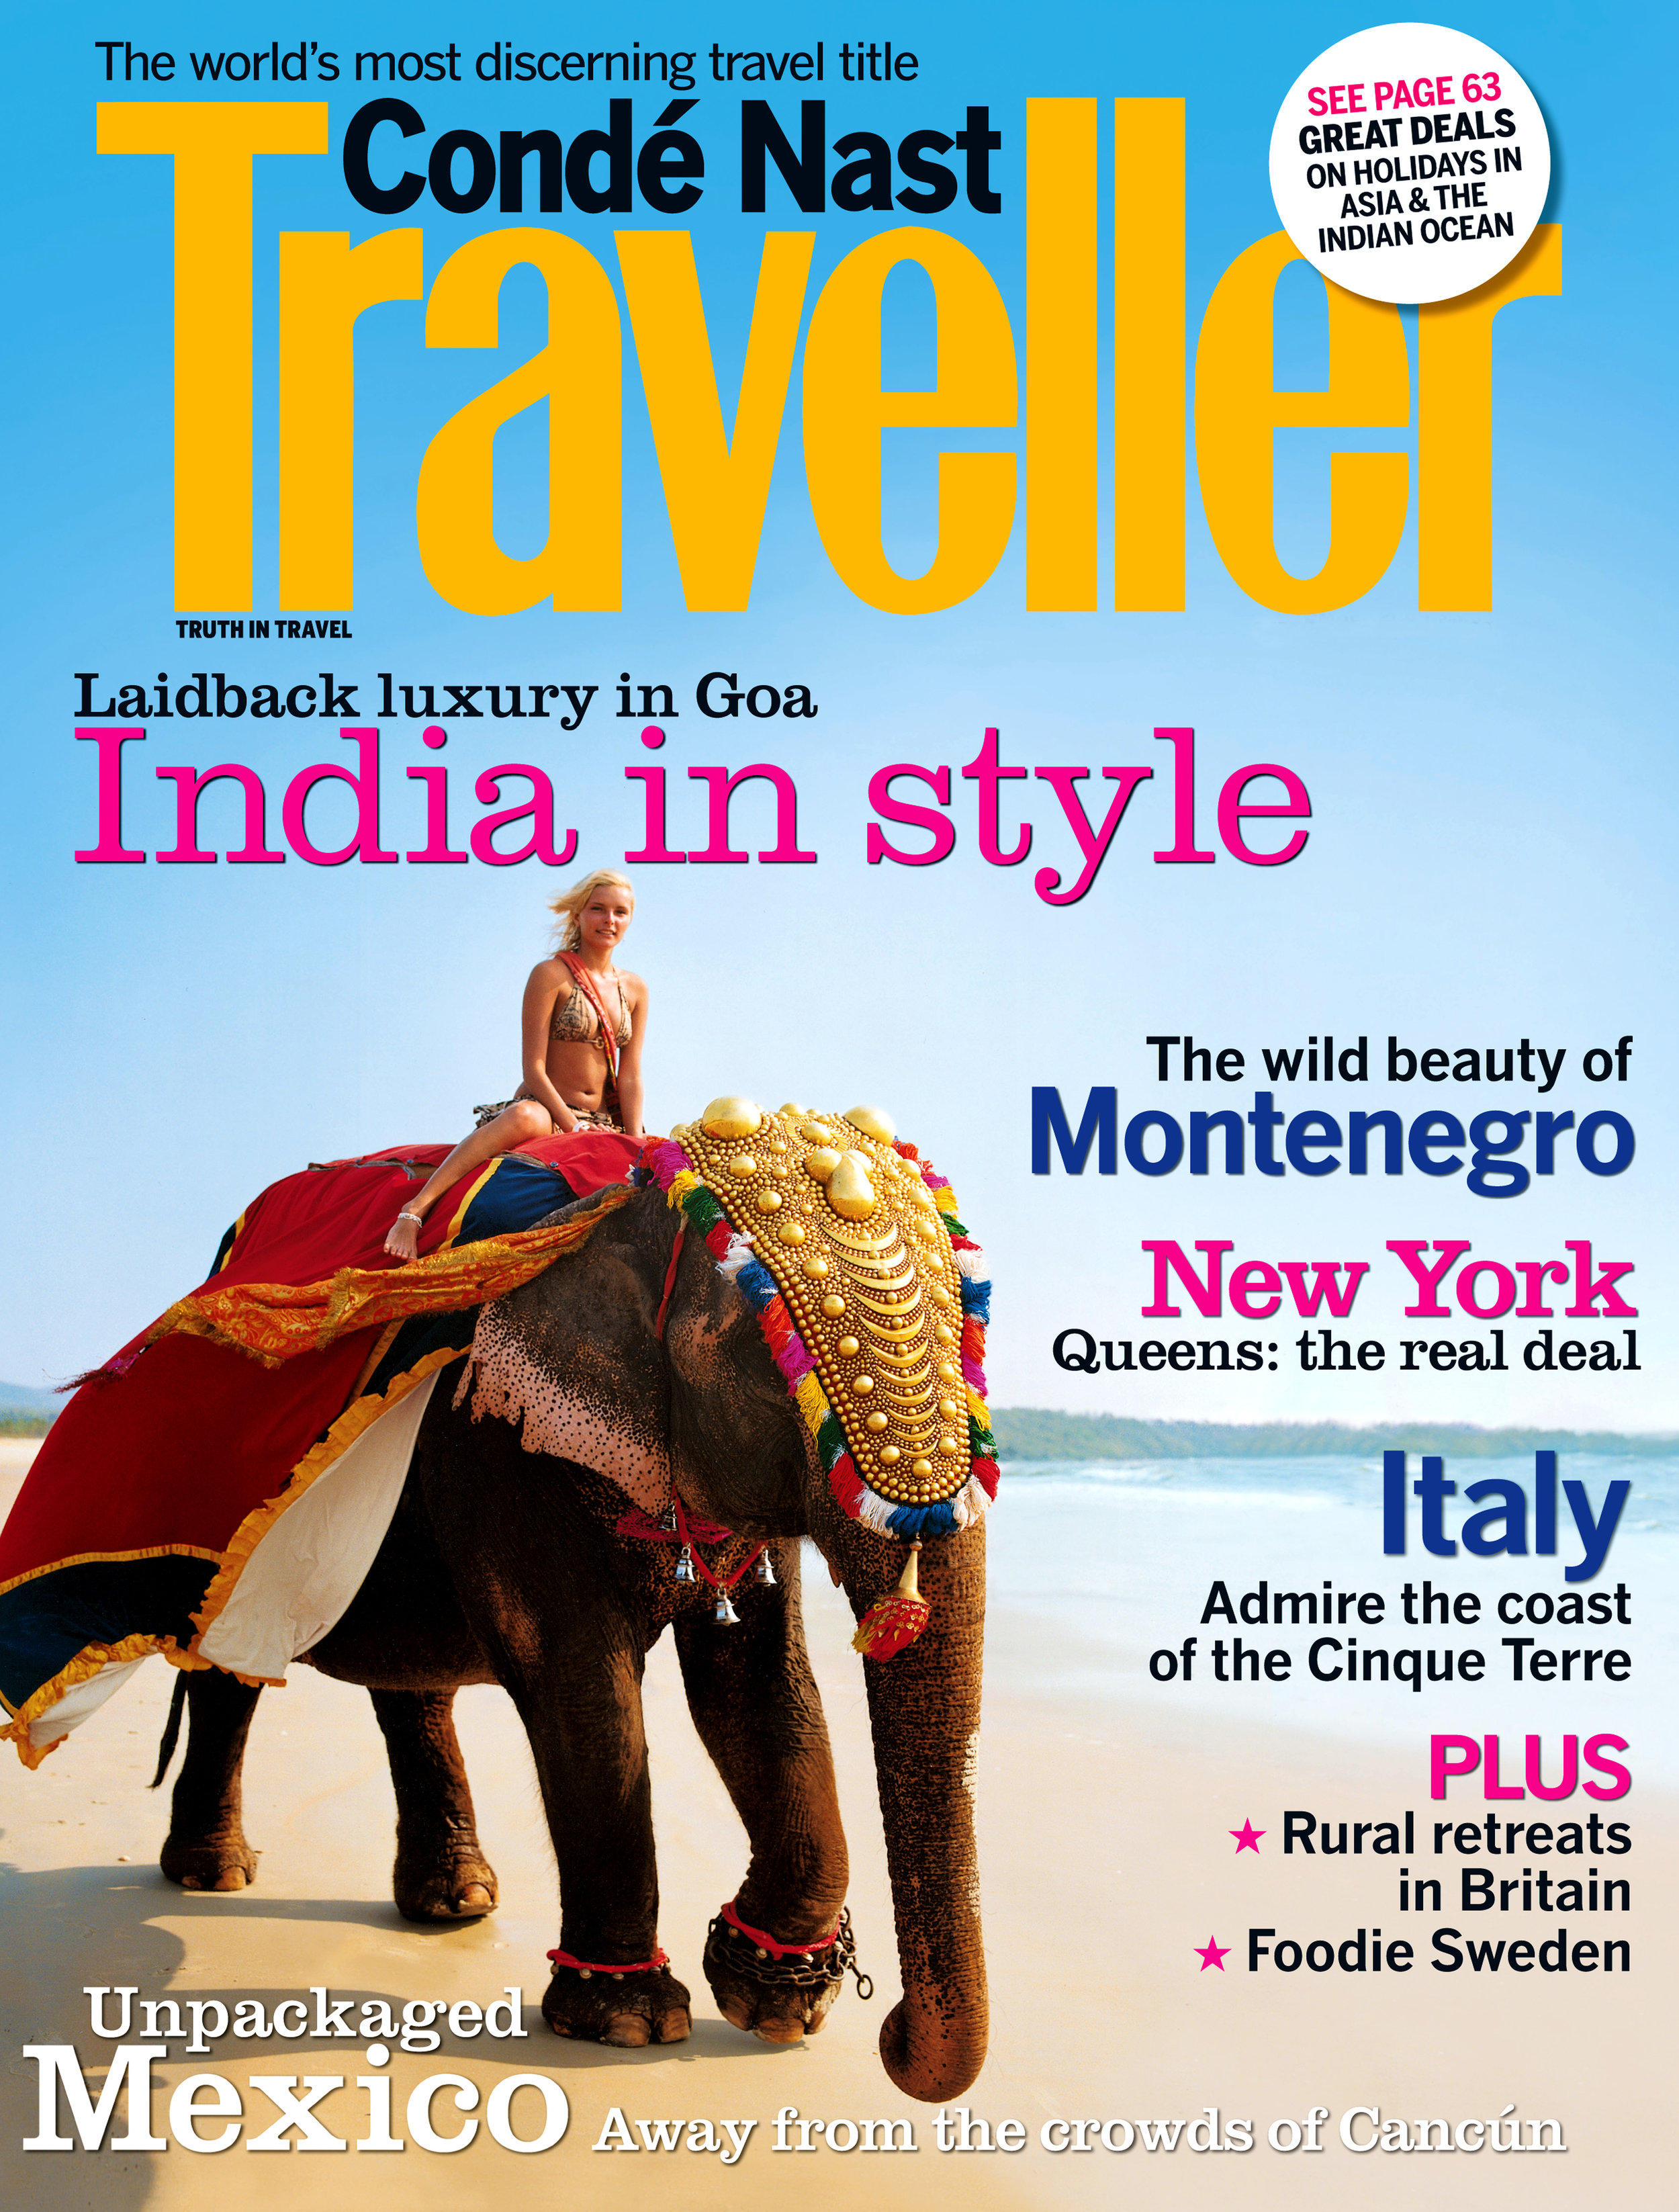 001-Cover-India-in-style.jpg